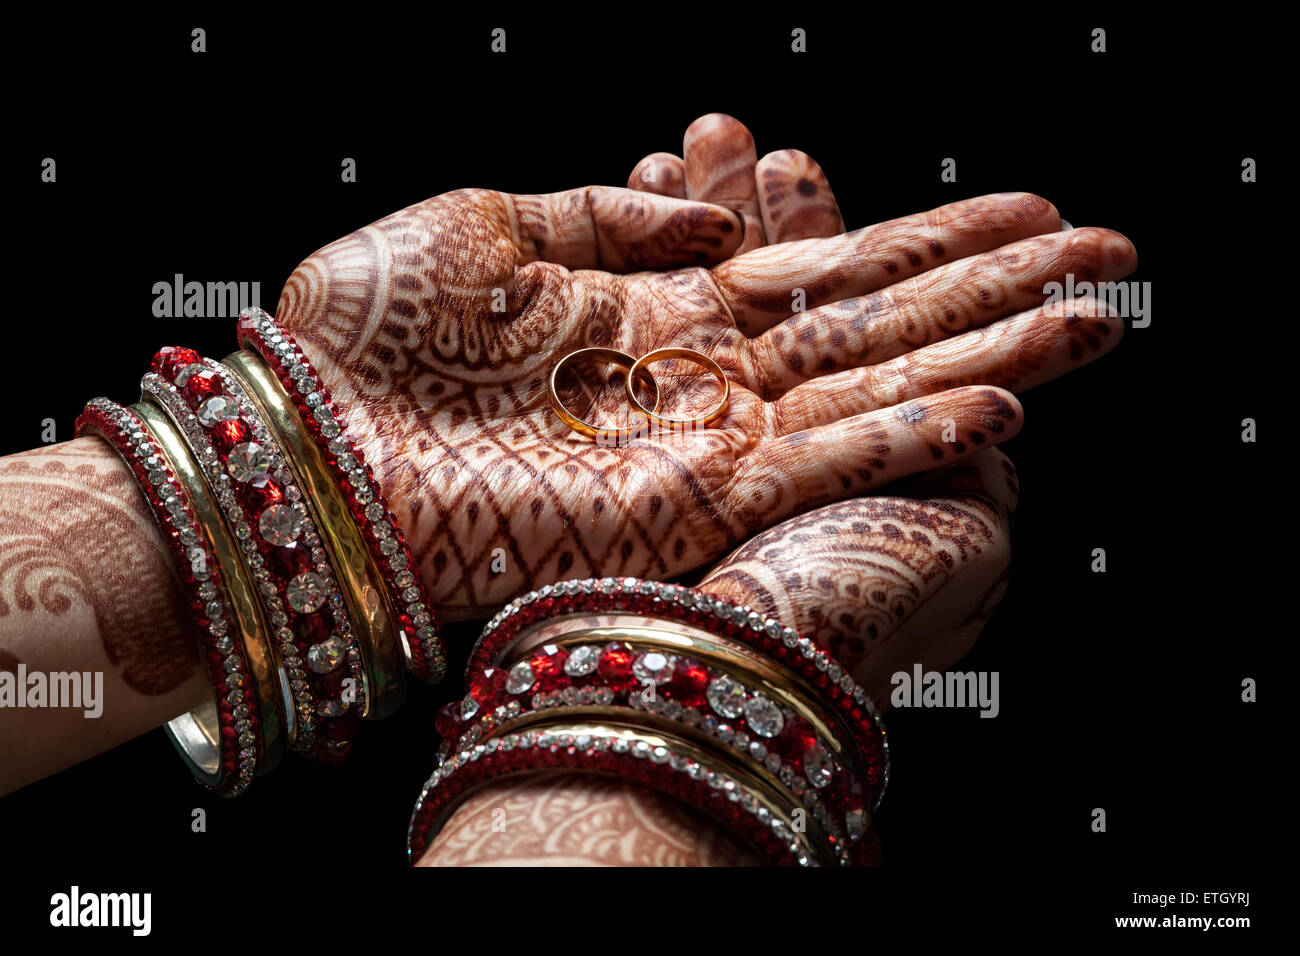 Woman hands with henna holding two golden wedding rings on black background - Stock Image